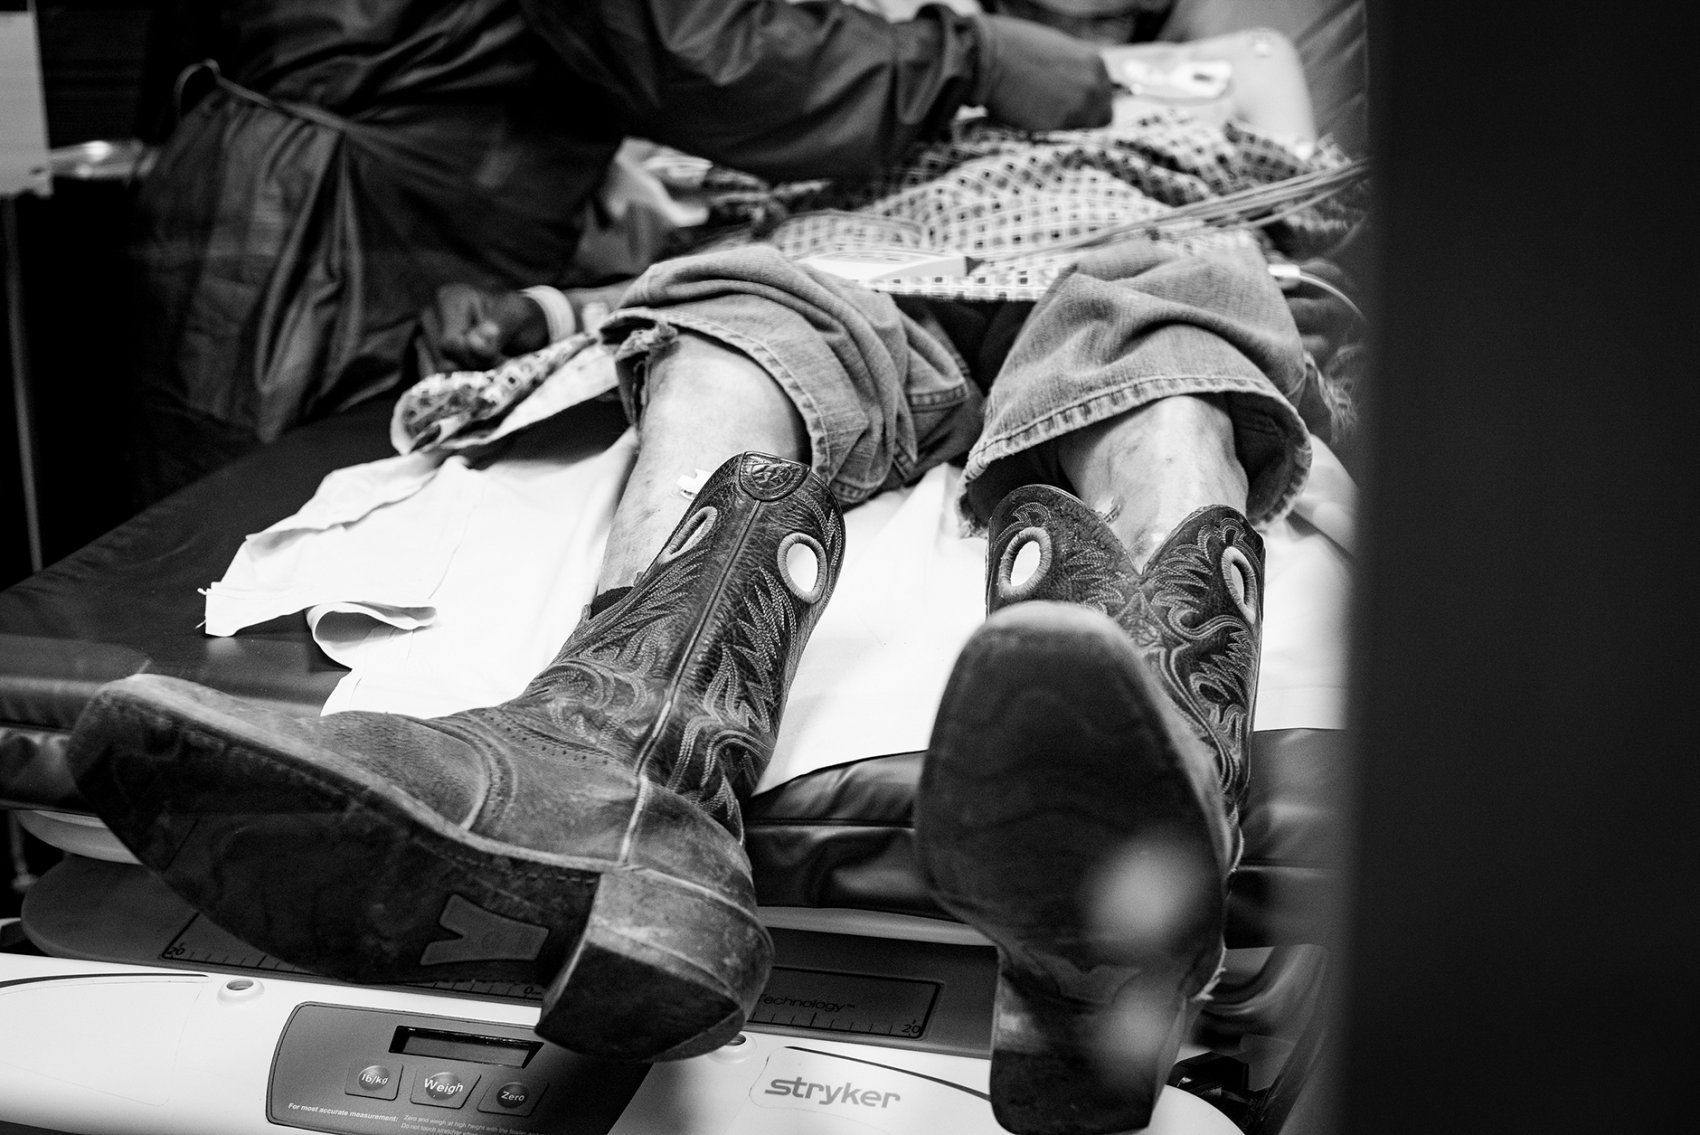 patient with cowboy boots on lies on a triage medical table